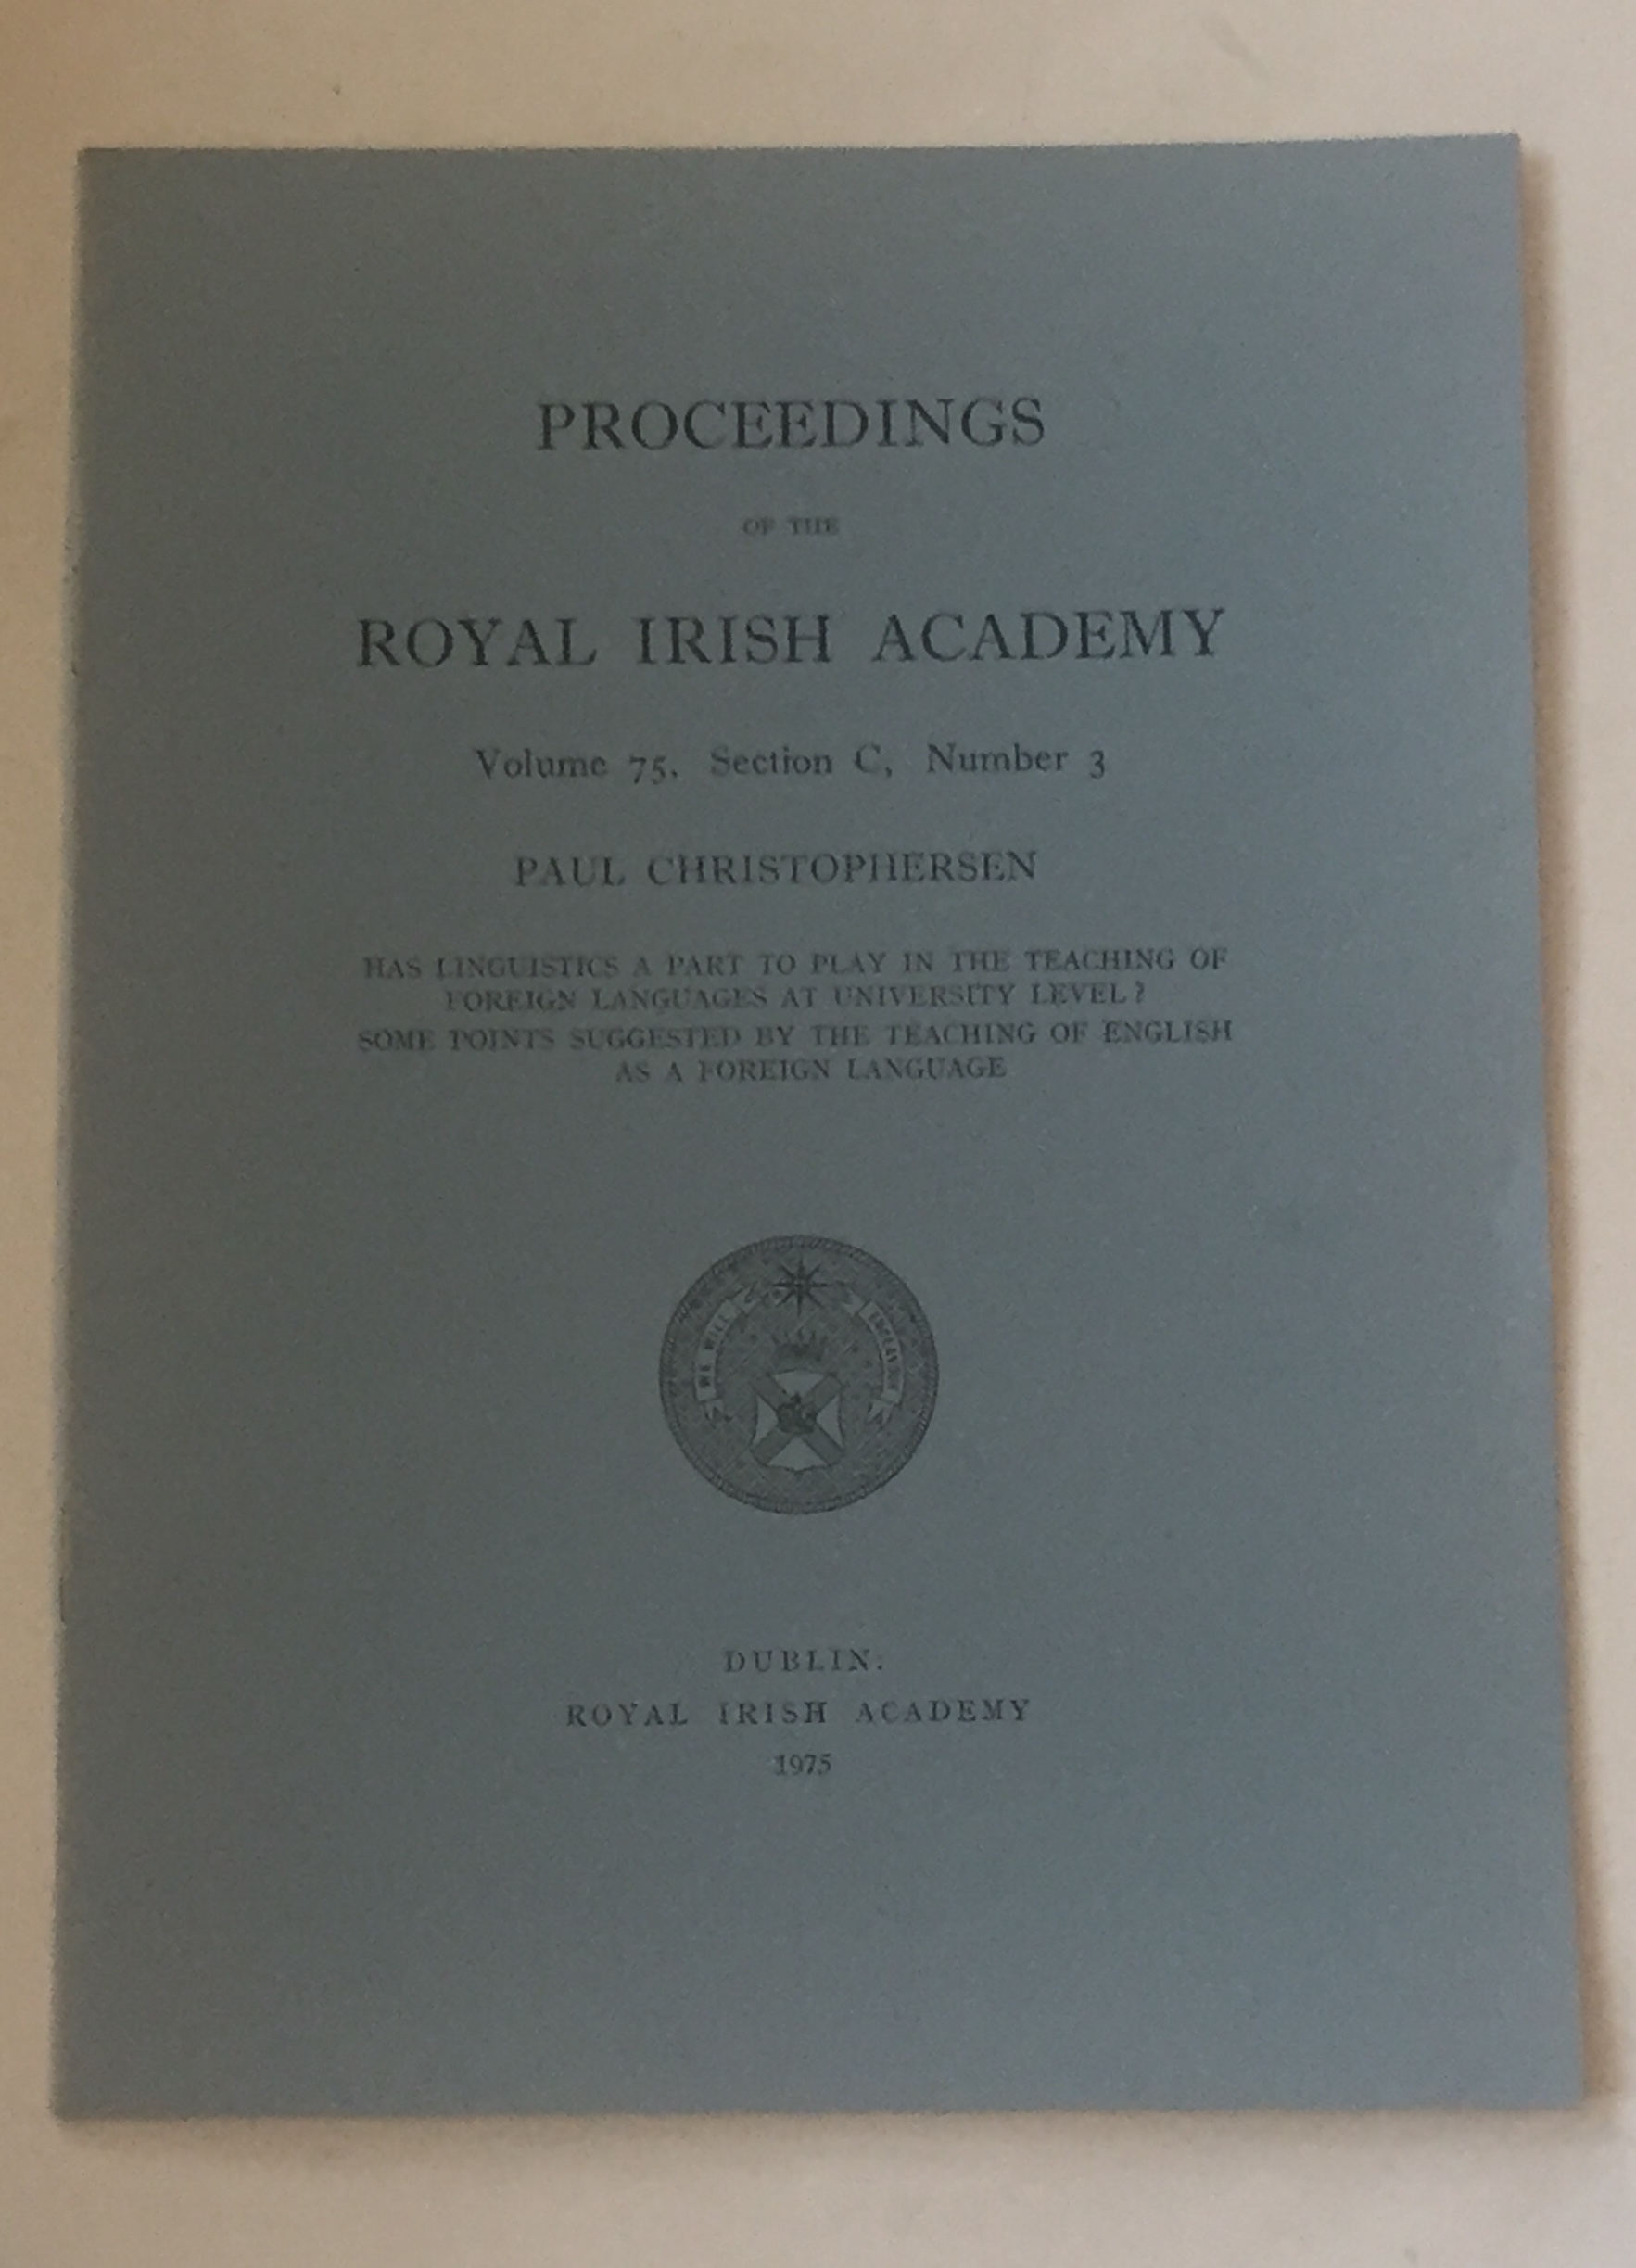 Image for Has linguistics a part to play in the teaching of foreign languages at university level? Some points suggested by the teaching of english as a foreign language  :Proceedings of the Royal Irish Academy, Volume 75, Section C, No. 3